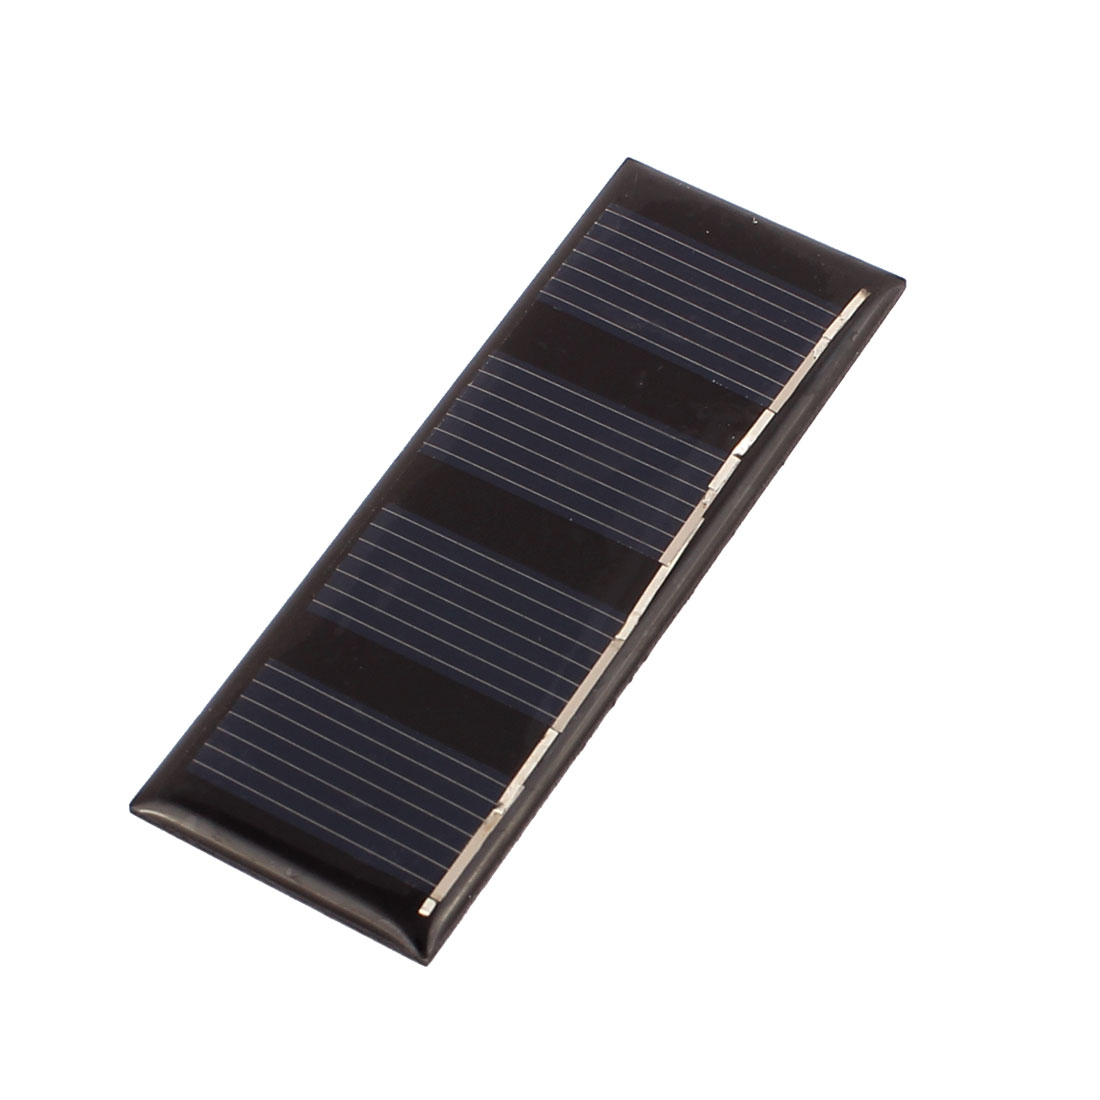 DC 2V 100mA 0.2W Rectangle Energy Saving Solar Cell Panel Module for Charger